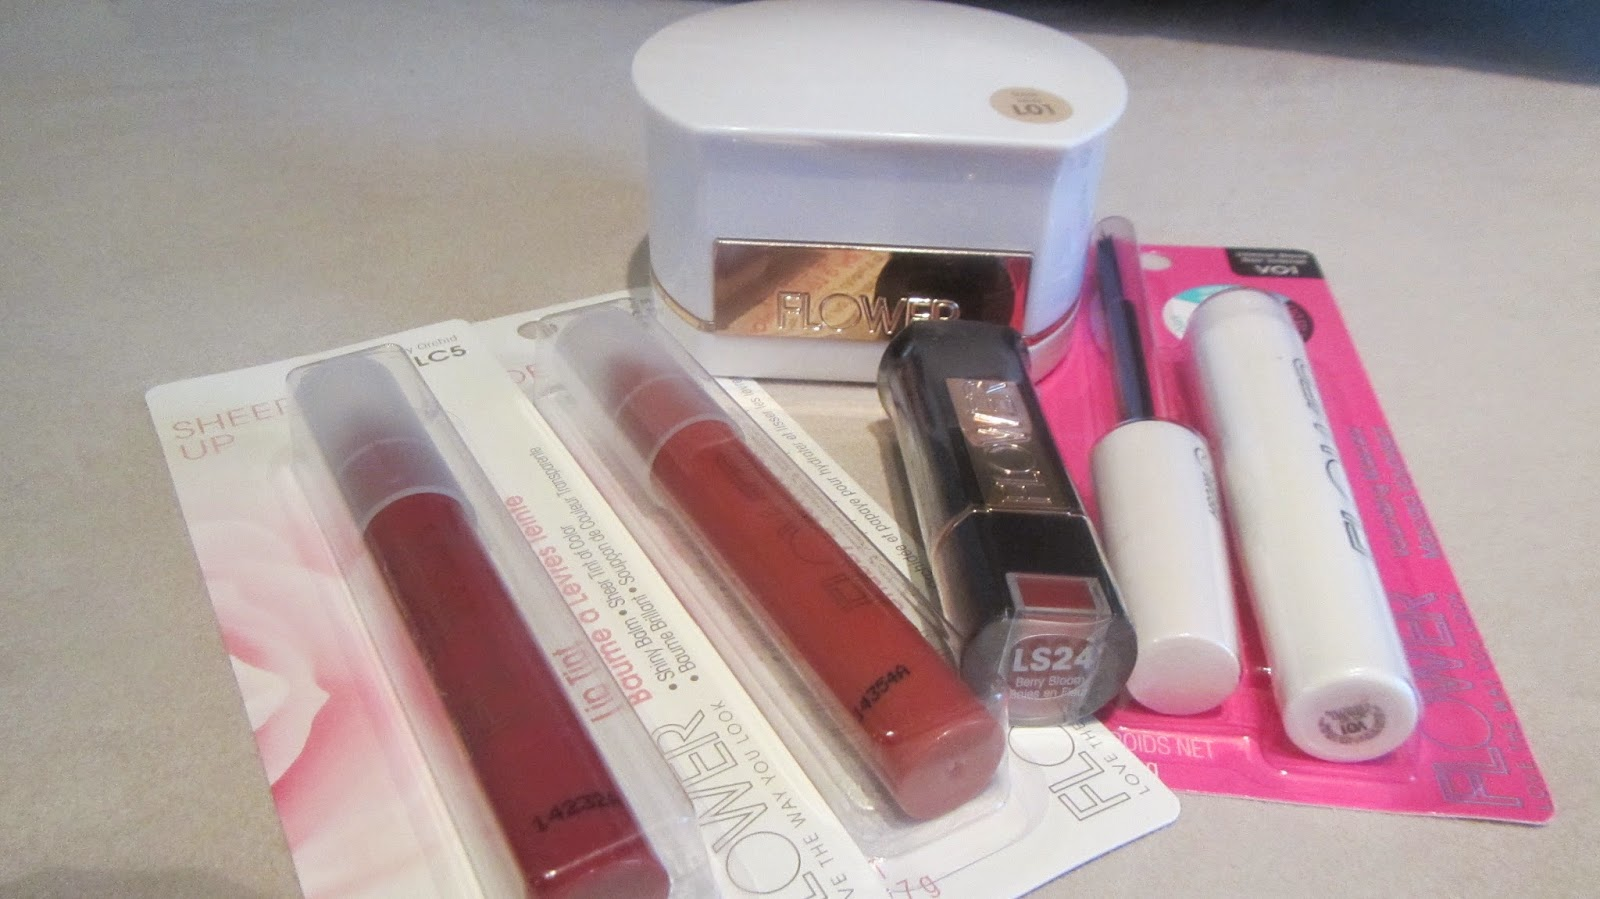 Red lip gloss beauty haul flower cosmetics by drew berrymore i picked up from left to right sheer up lip tint in airy orchid lip suede velvet lip chubby in berry more kiss stick luxury lip color in berry bloom izmirmasajfo